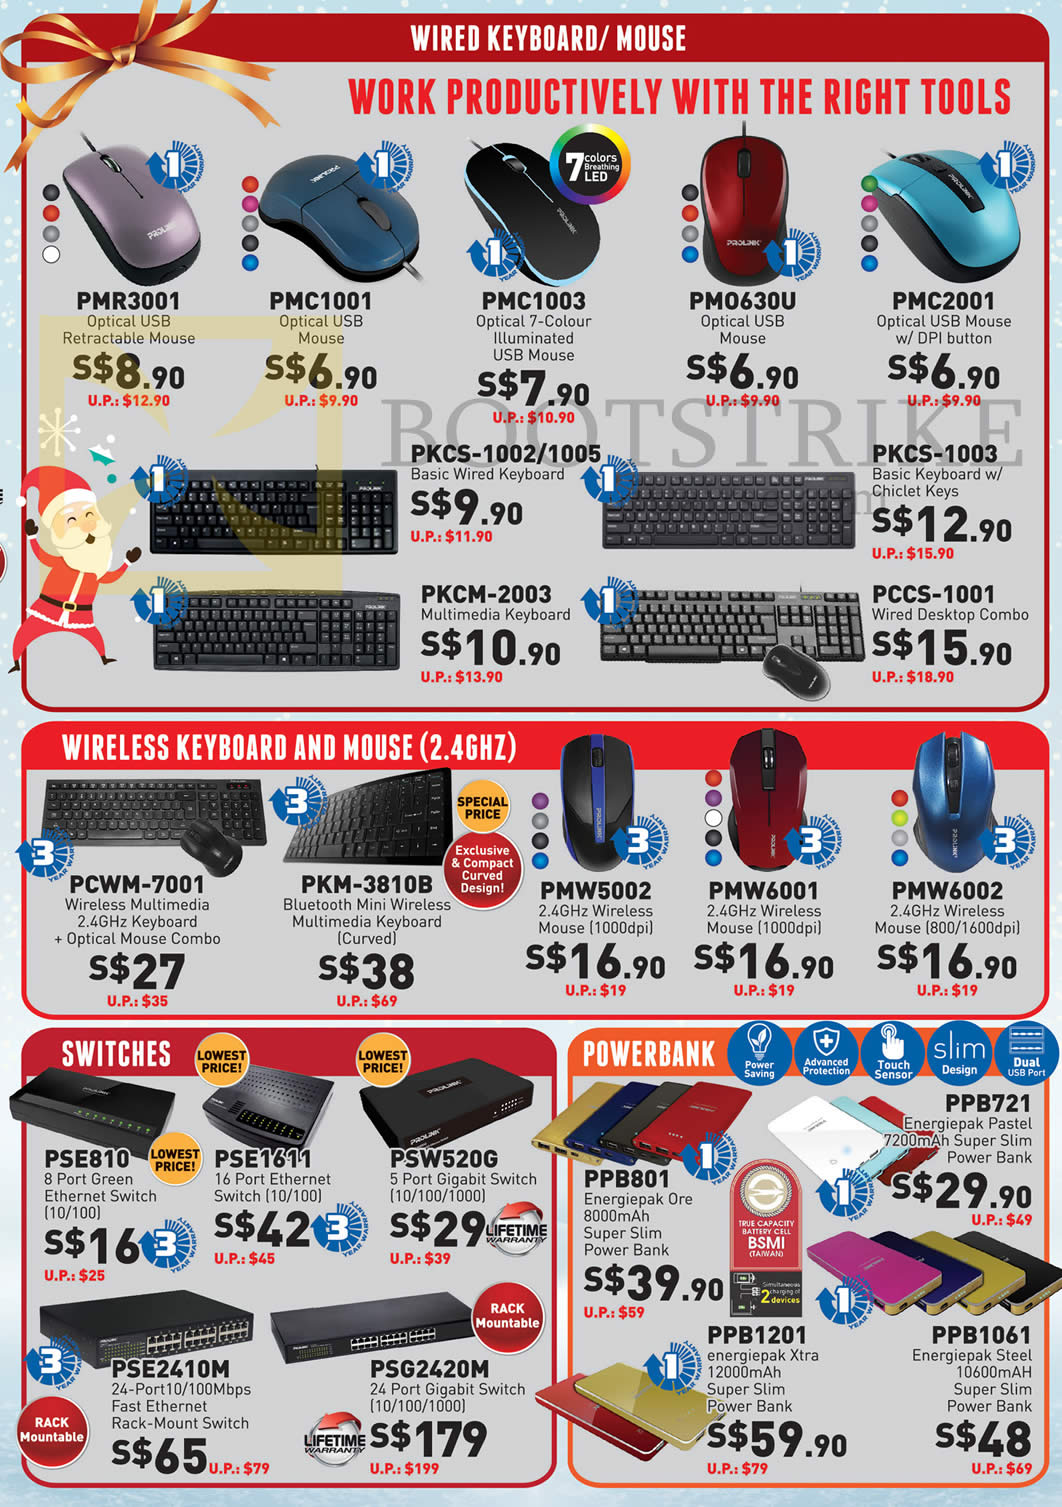 SITEX 2015 price list image brochure of Prolink Mouse, Keyboard, Wired, Wireless, Switches, Powerbank, PMR3001, PMC1001, 1003, 2001, PCWM-7001, PMW5002, 6001, 6002, PSE810, 1611, 2410M